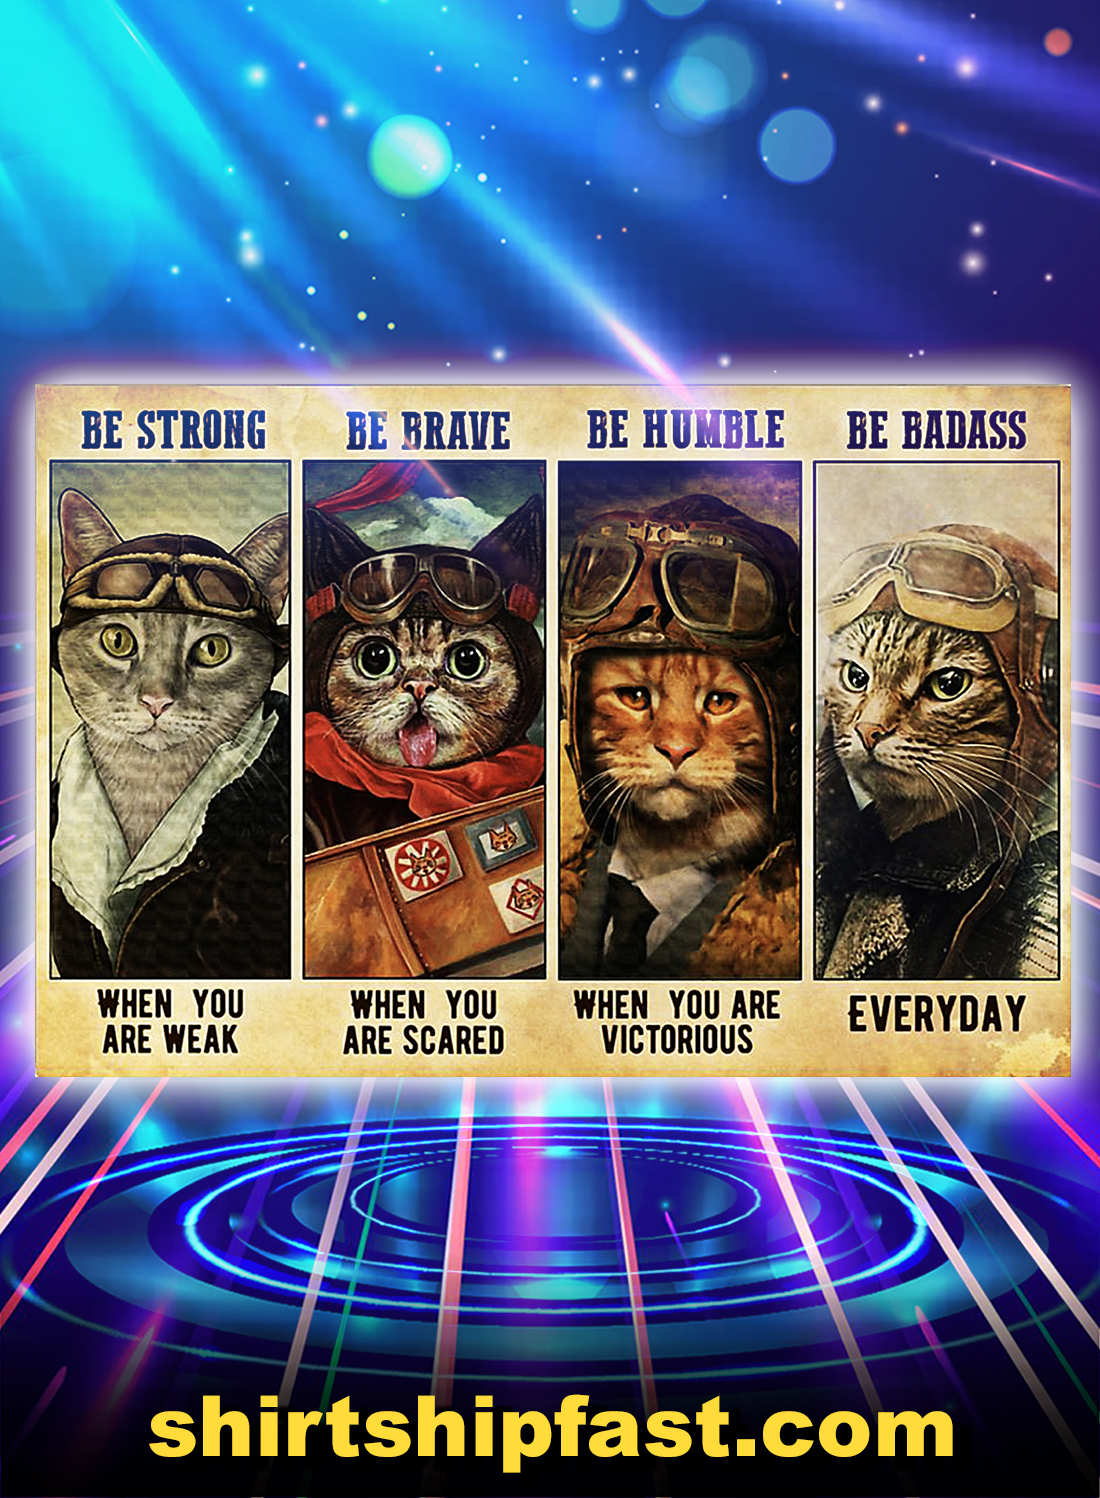 Cat pilot be strong be brave be humble be badass poster